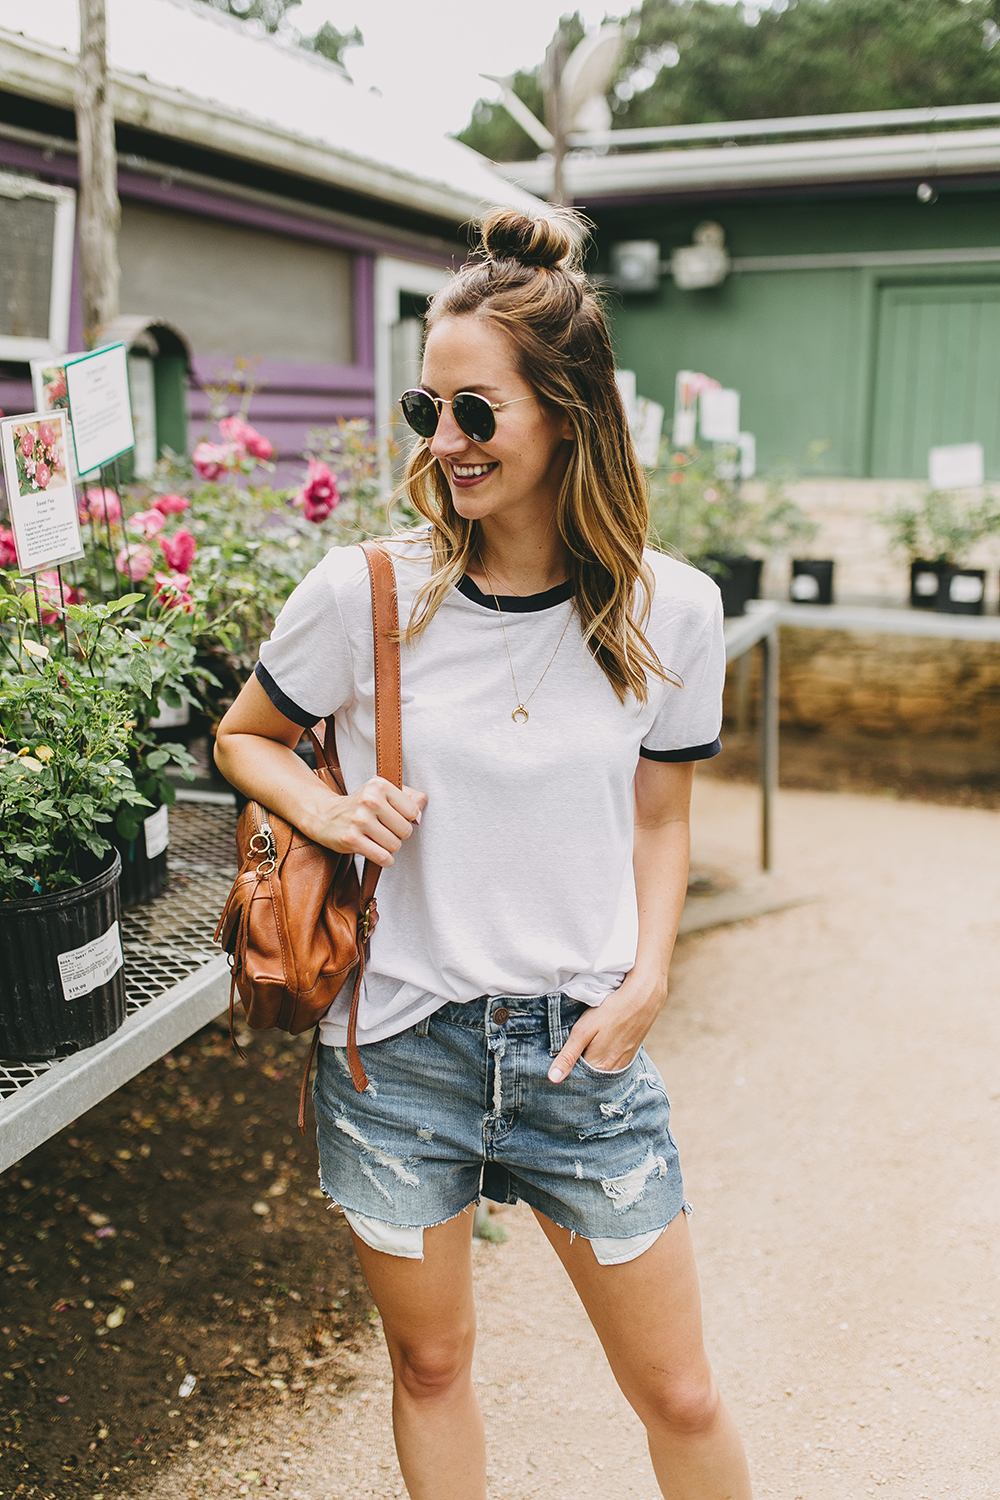 livvyland-blog-olivia-watson-austin-texas-fashion-blogger-natural-gardener-tee-boyfriend-shorts-denim-cutoffs-easy-summer-outfit-idea-treasure-bond-nordstrom-5